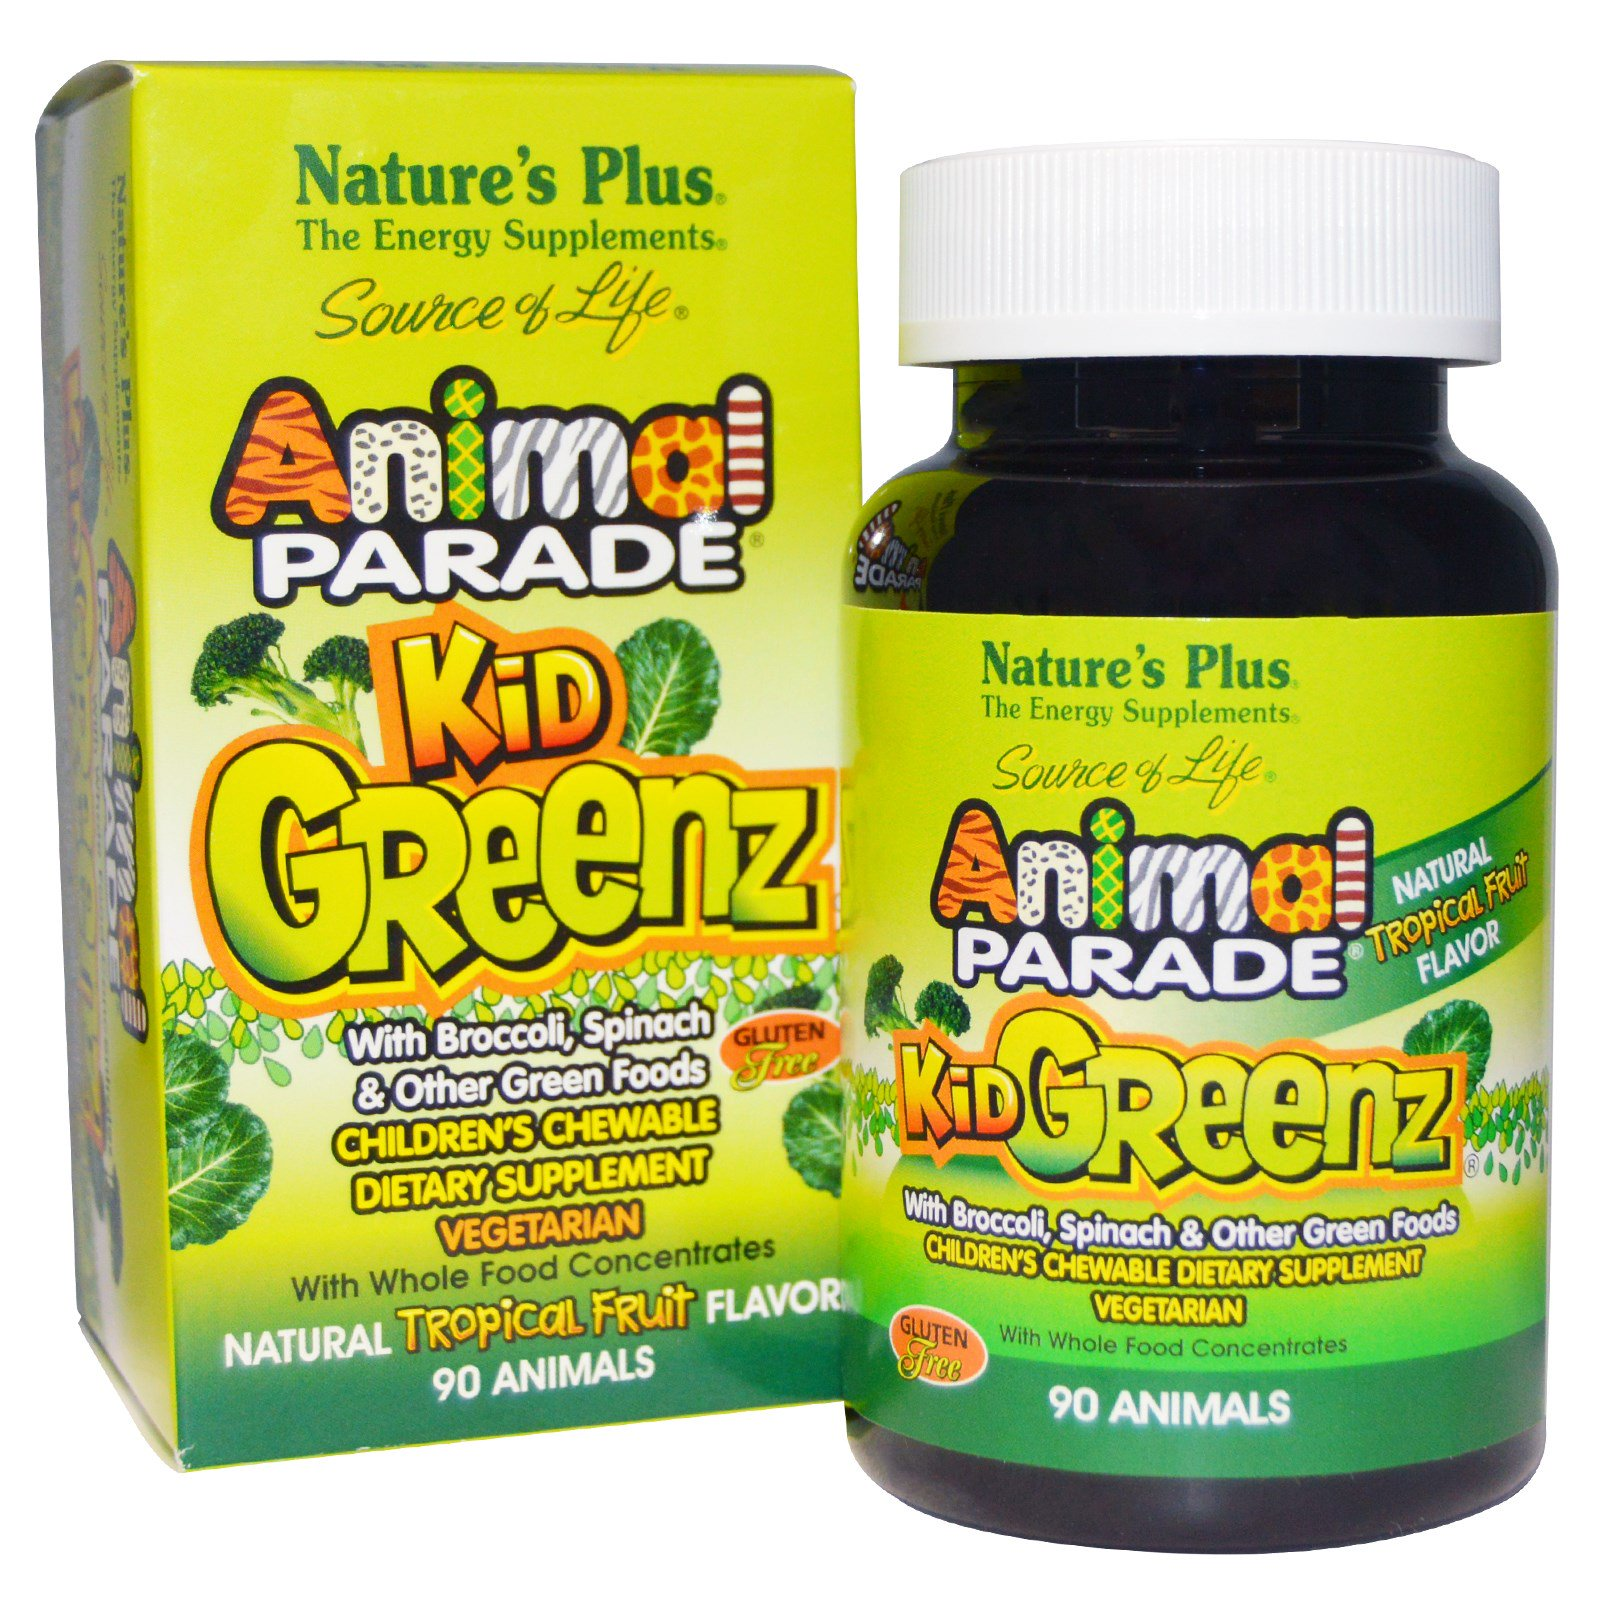 Image of Kid Greenz, Natural Tropical Fruit Flavor (90 Animals) - Nature's Plus 0097467299689